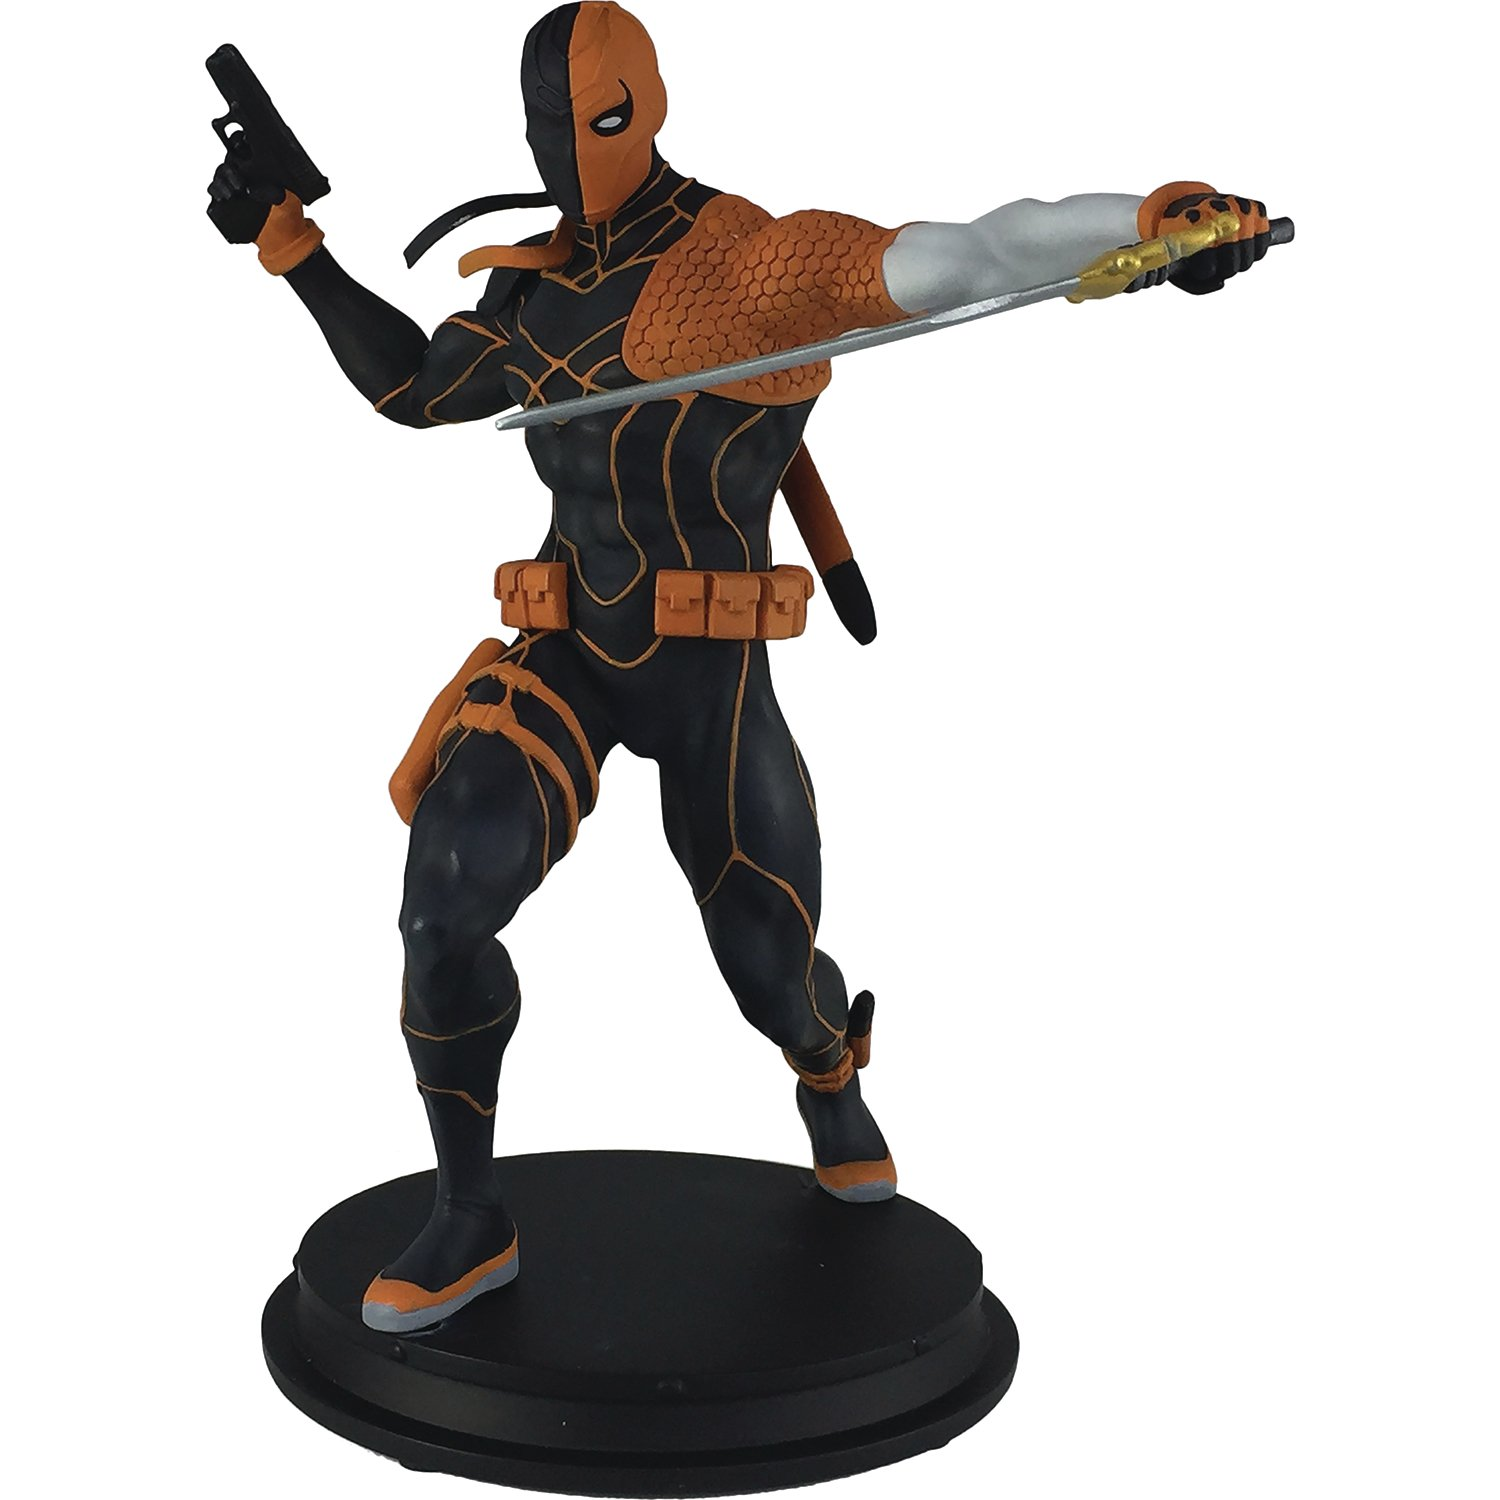 Icon Heroes DC Comics Rebirth Deathstroke Toy Figure Statues